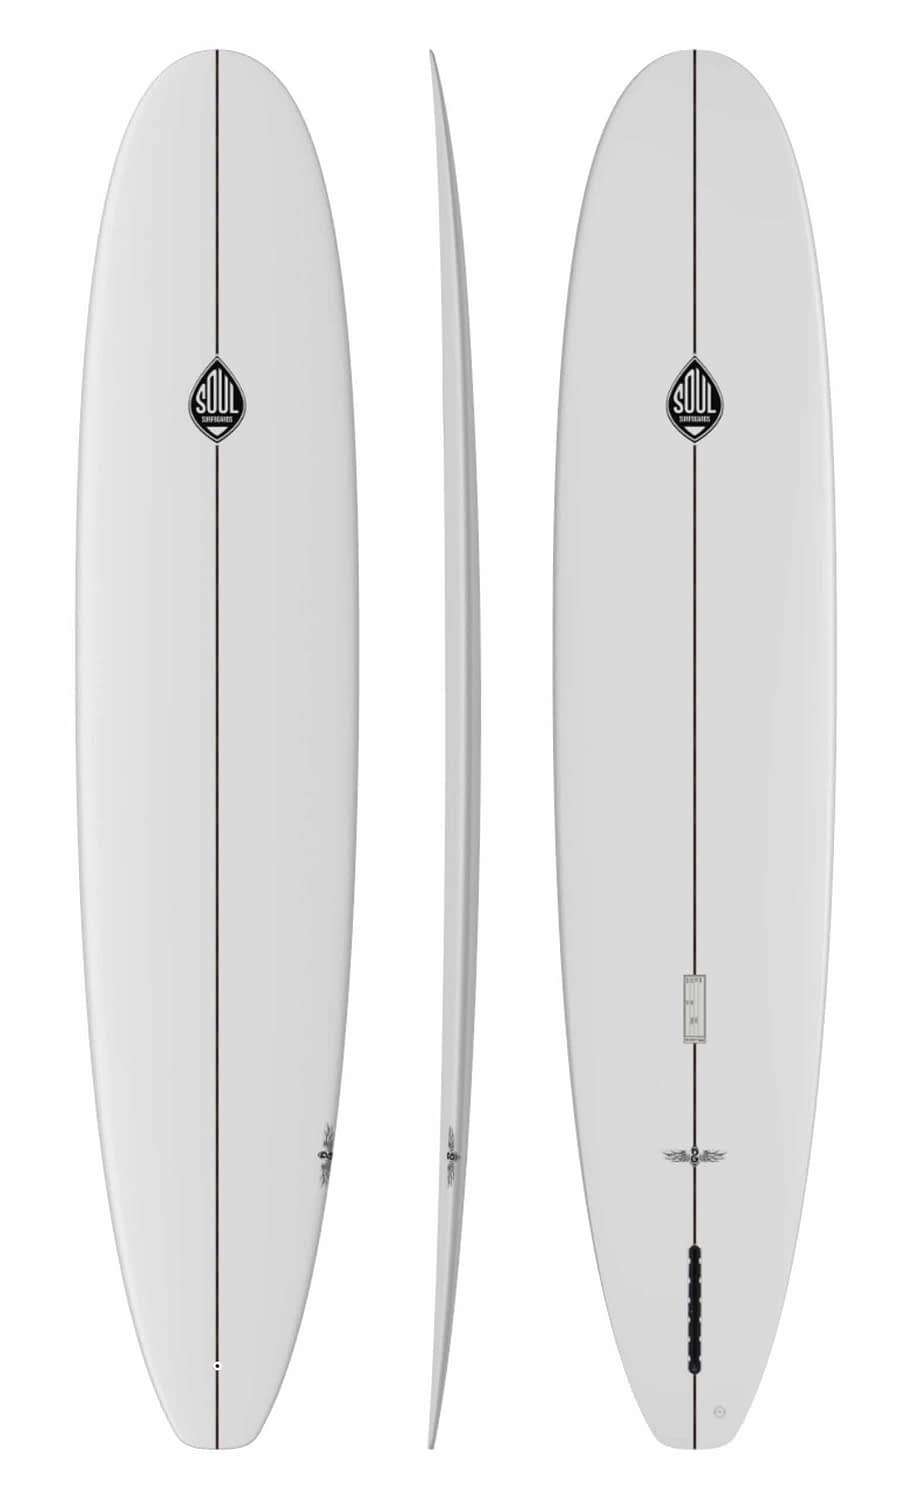 60 s soul surfboards